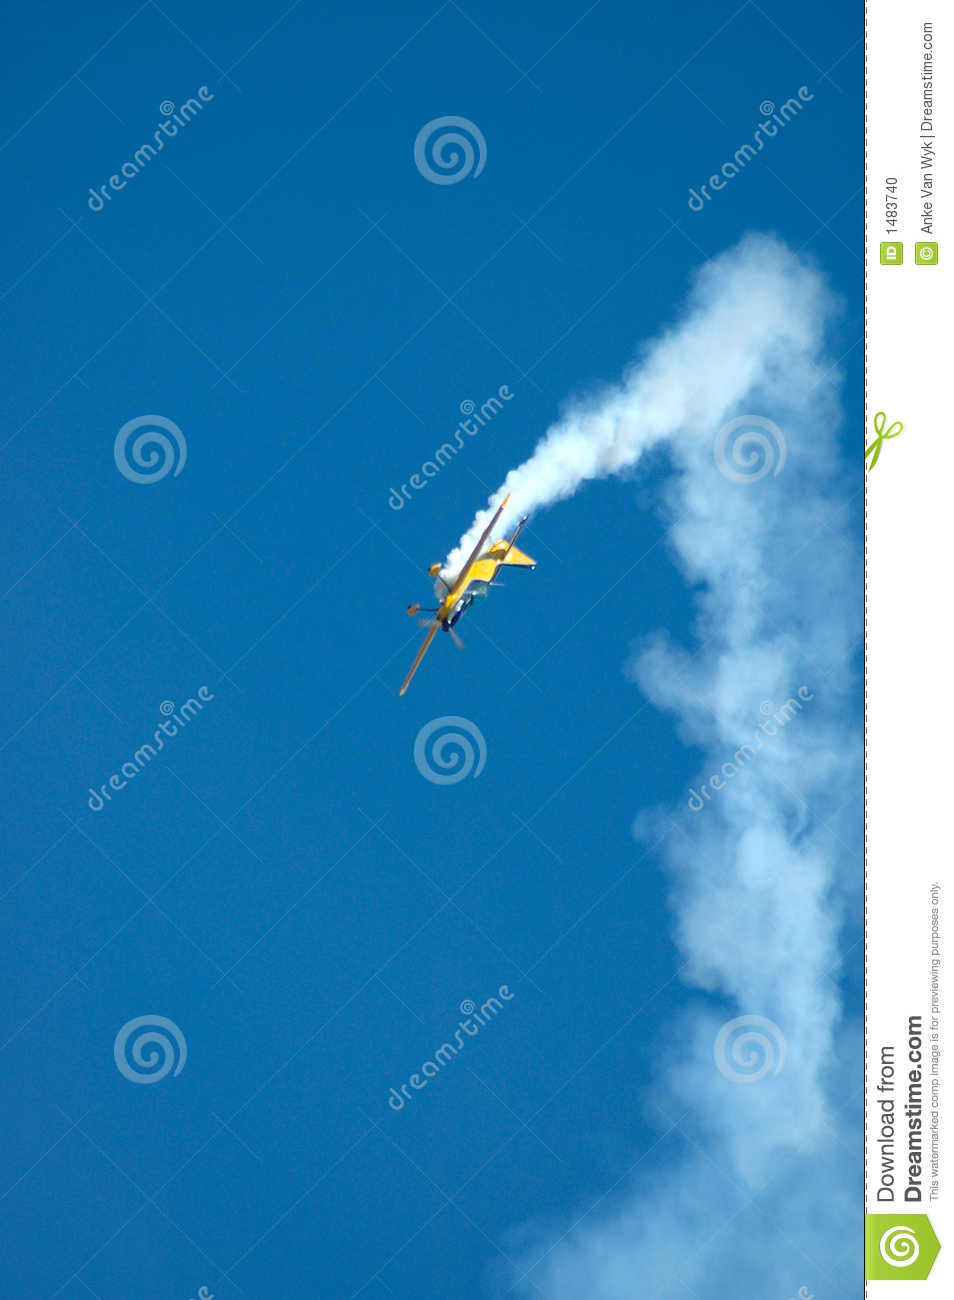 Airplane In Trouble Stock Photo - Image: 1483740  Airplane In Tro...